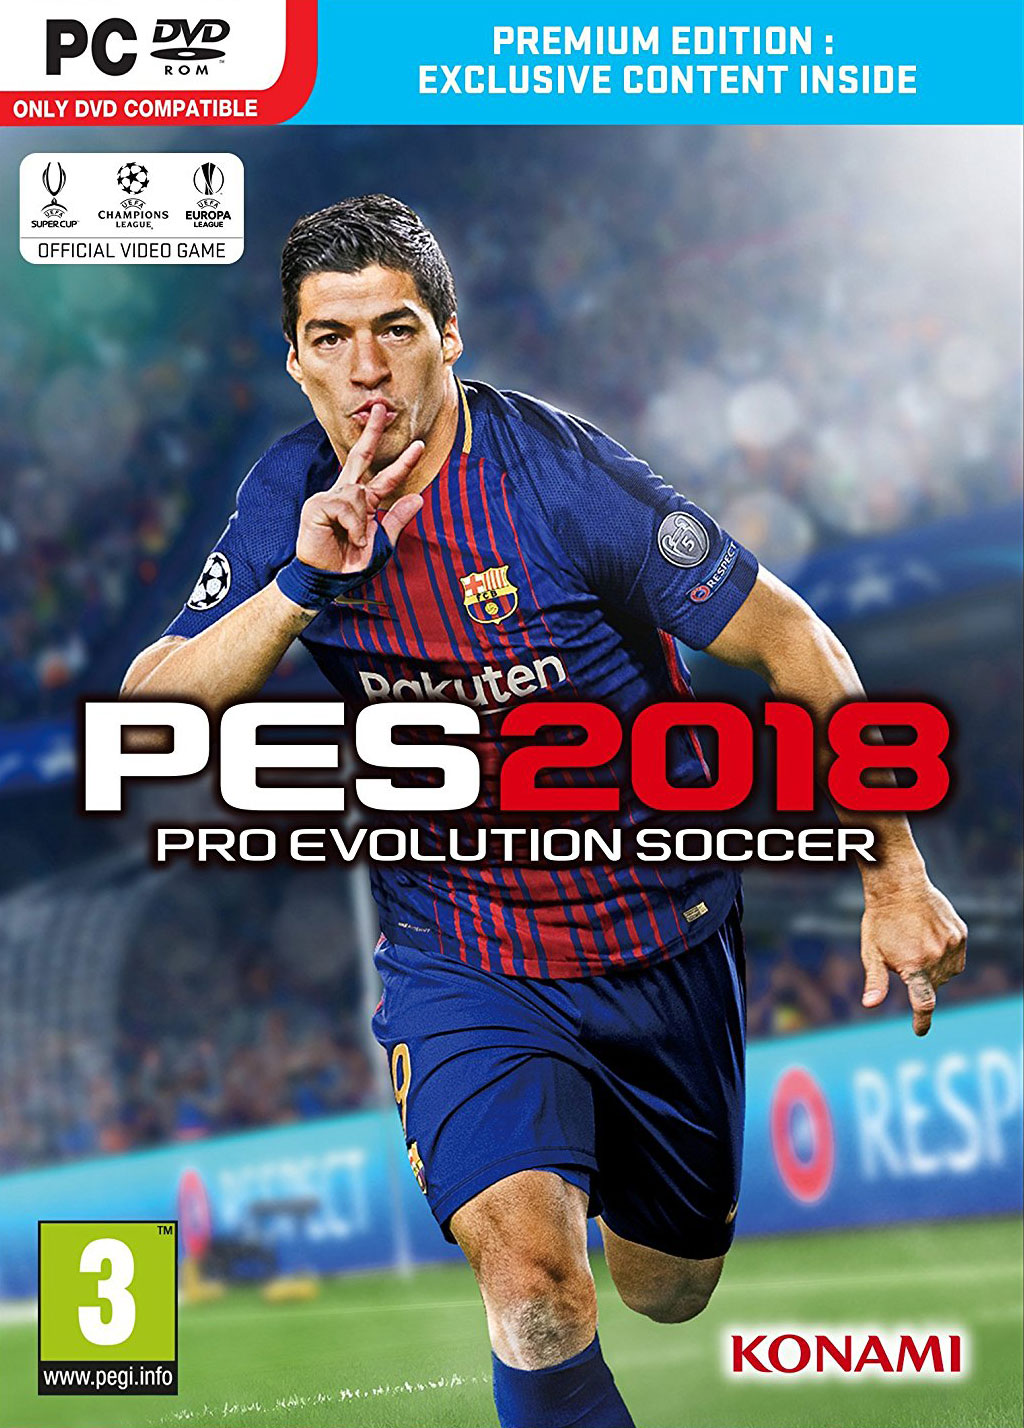 http://img5.downloadha.com/hosein/Game/September%202017/14/Pro-Evolution-Soccer-2018-pc-cover-large.jpg